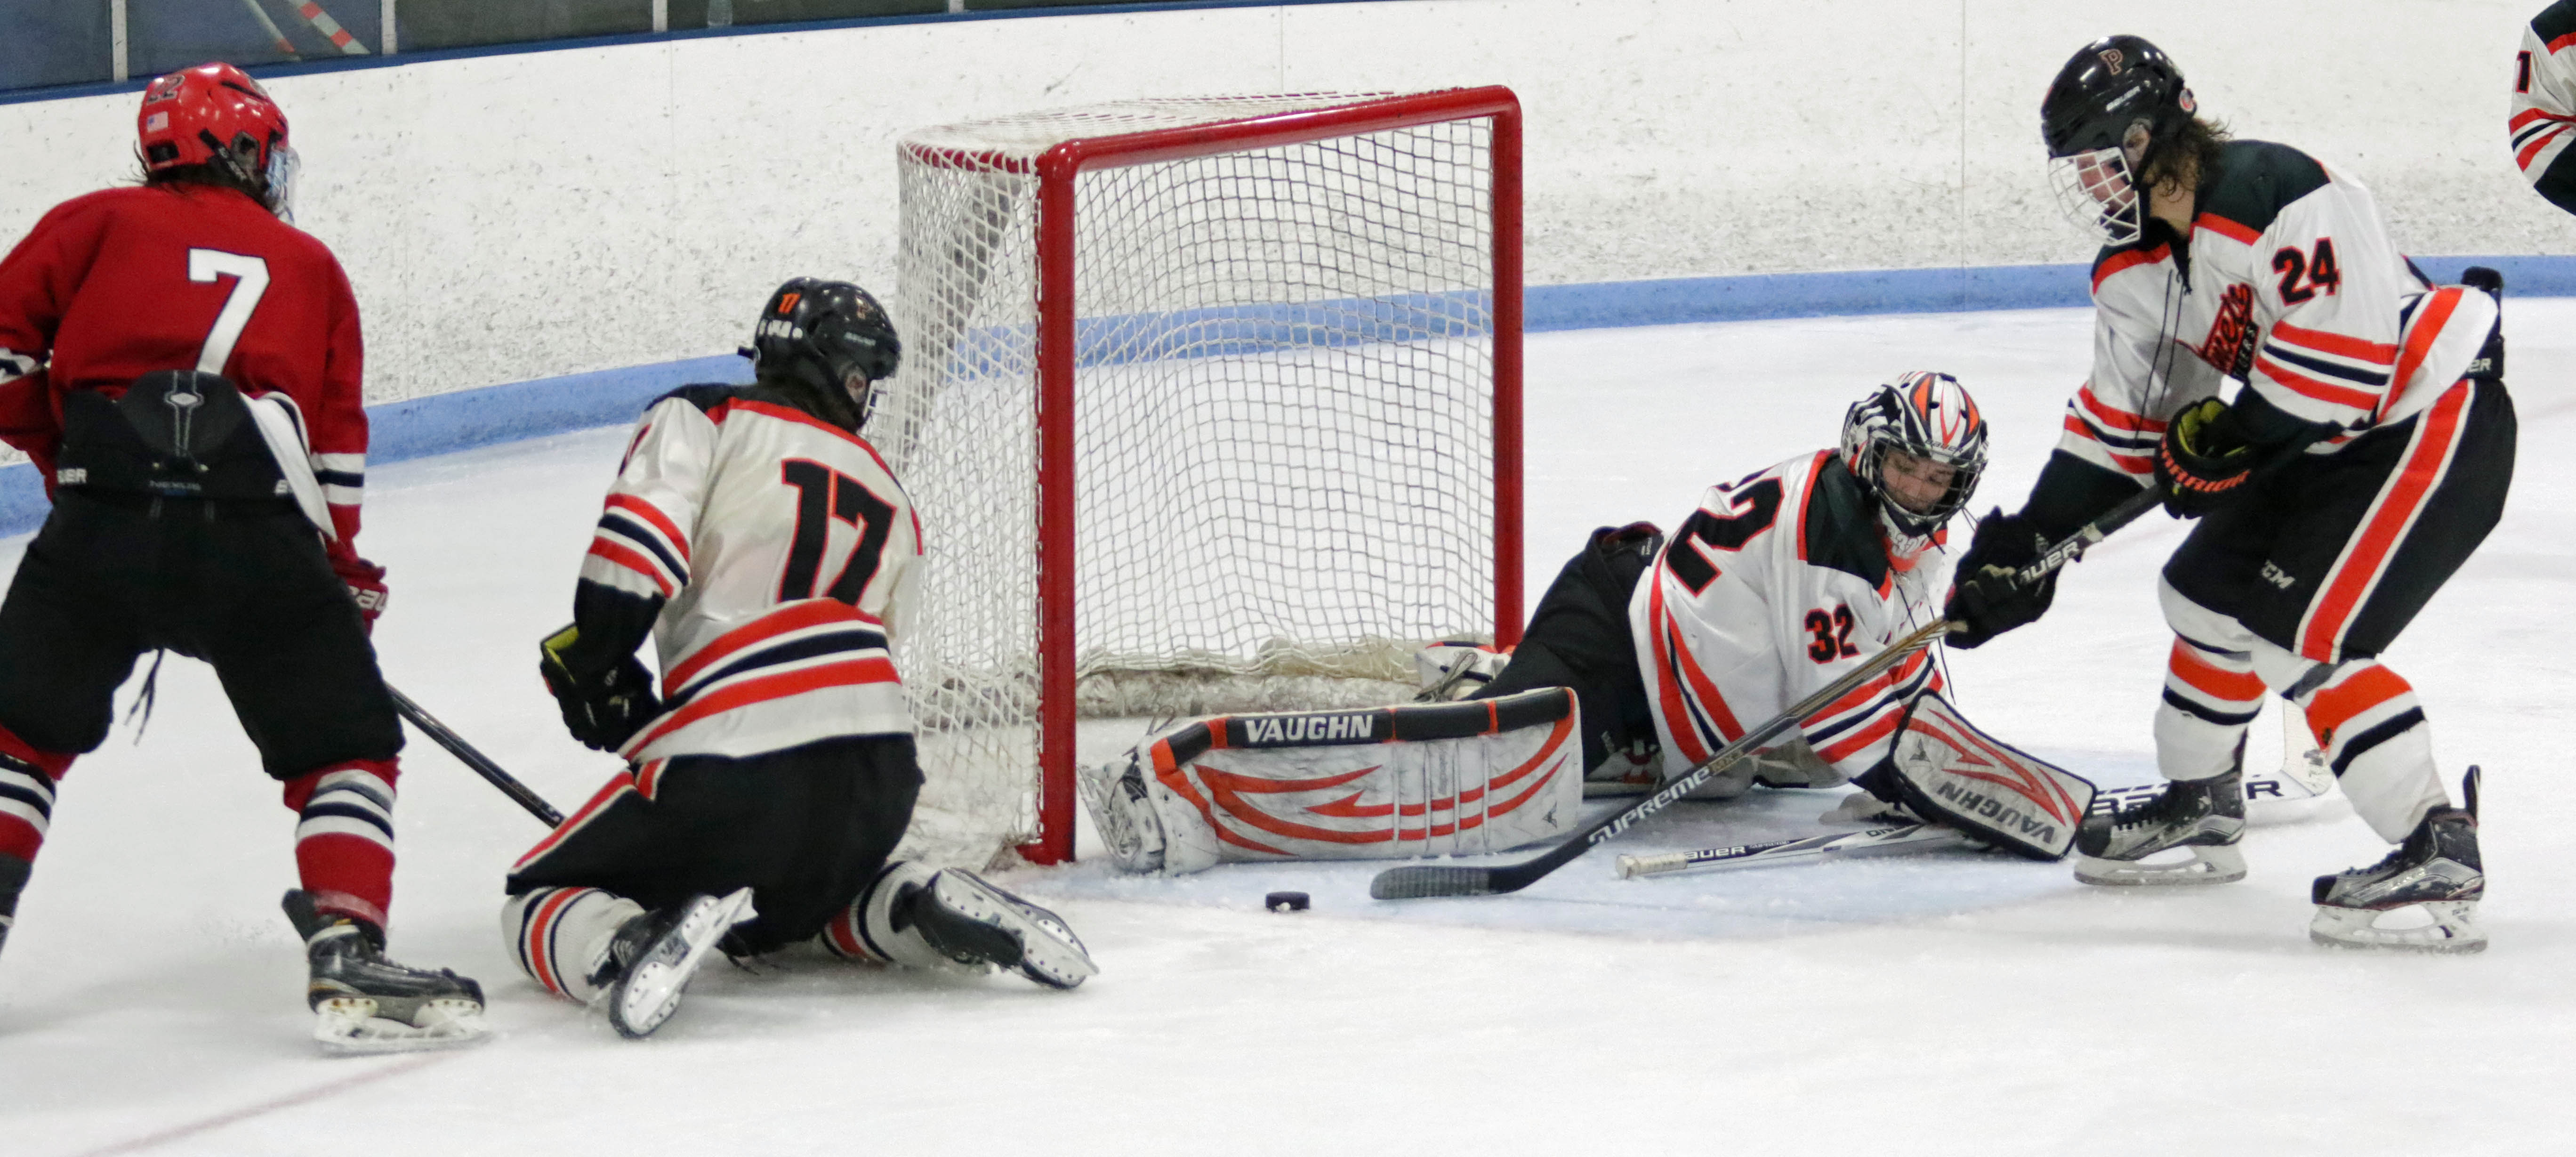 MN H.S.: Princeton Punches Ticket For First Trip To State In 13 Seasons